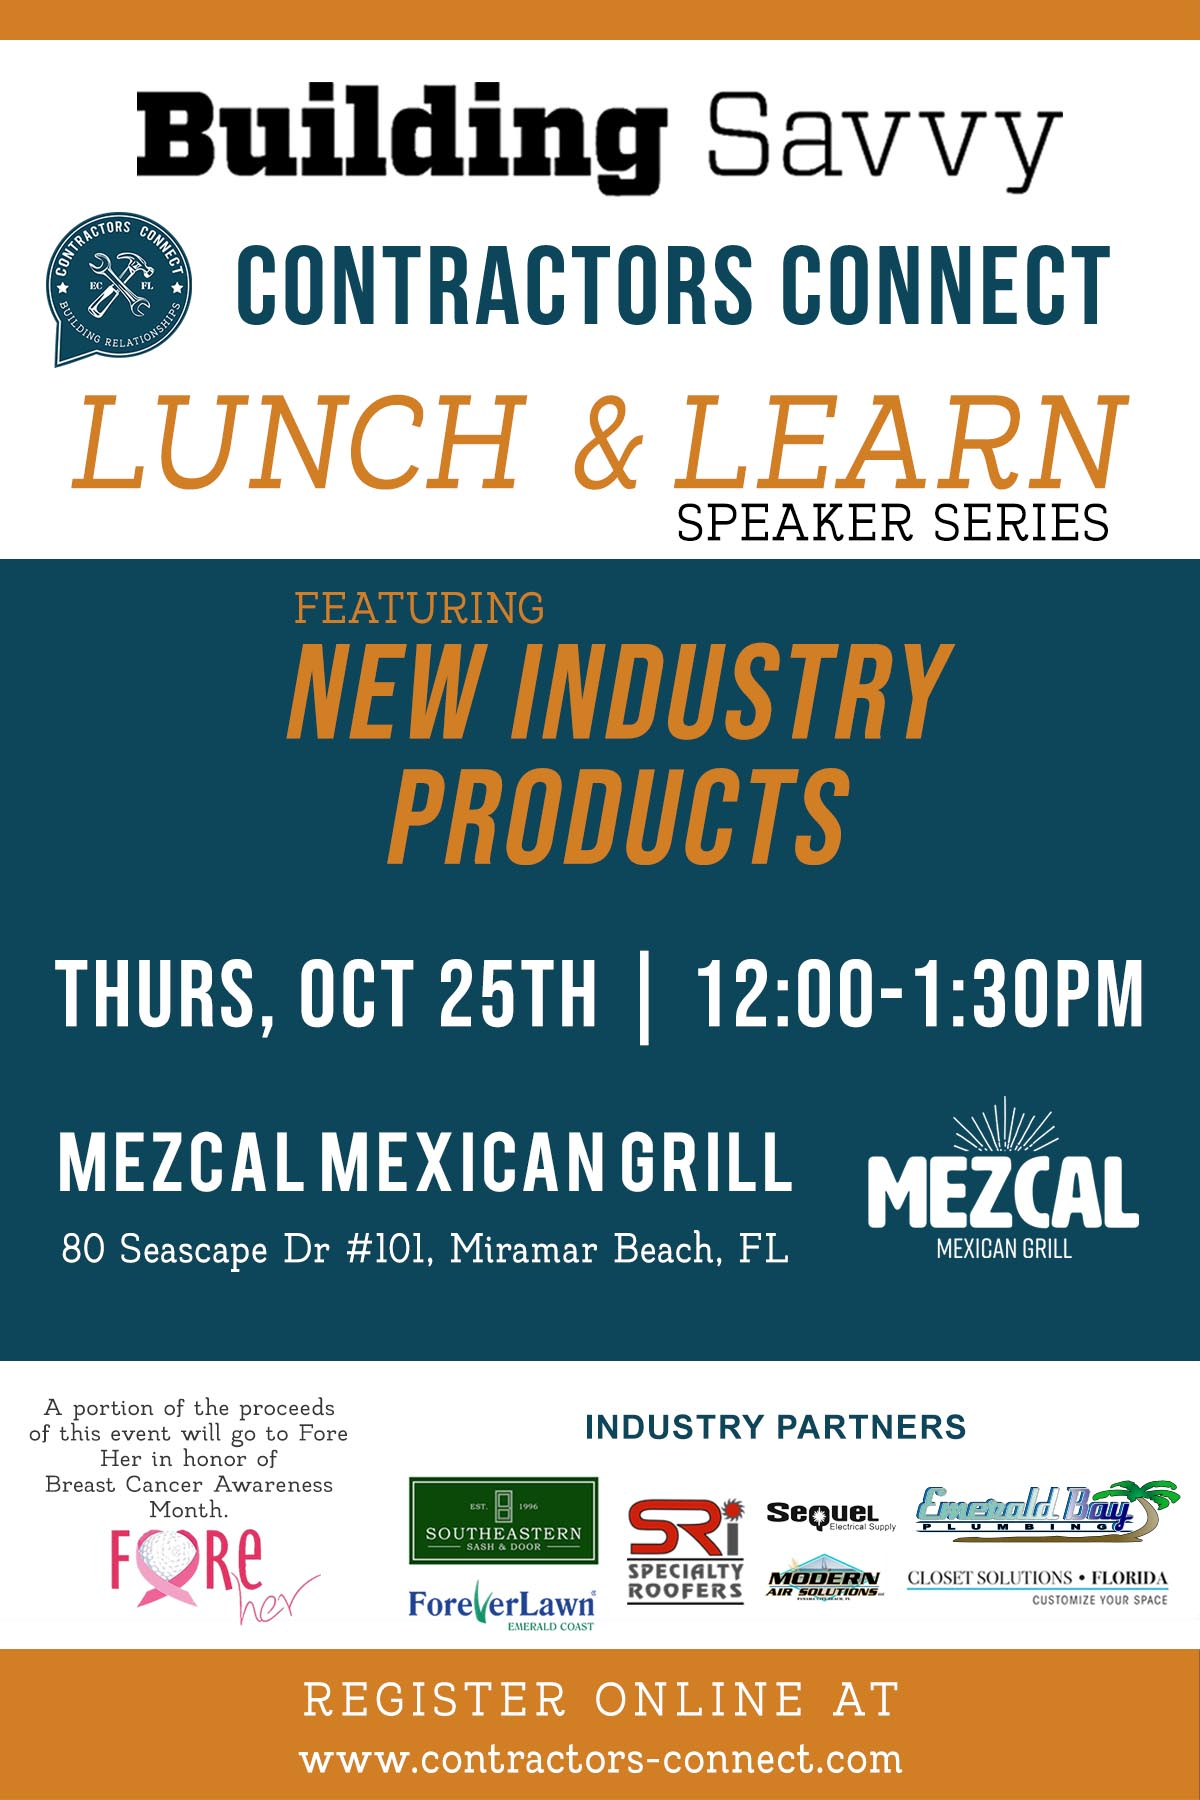 Contractors Connect Lunch & Learn